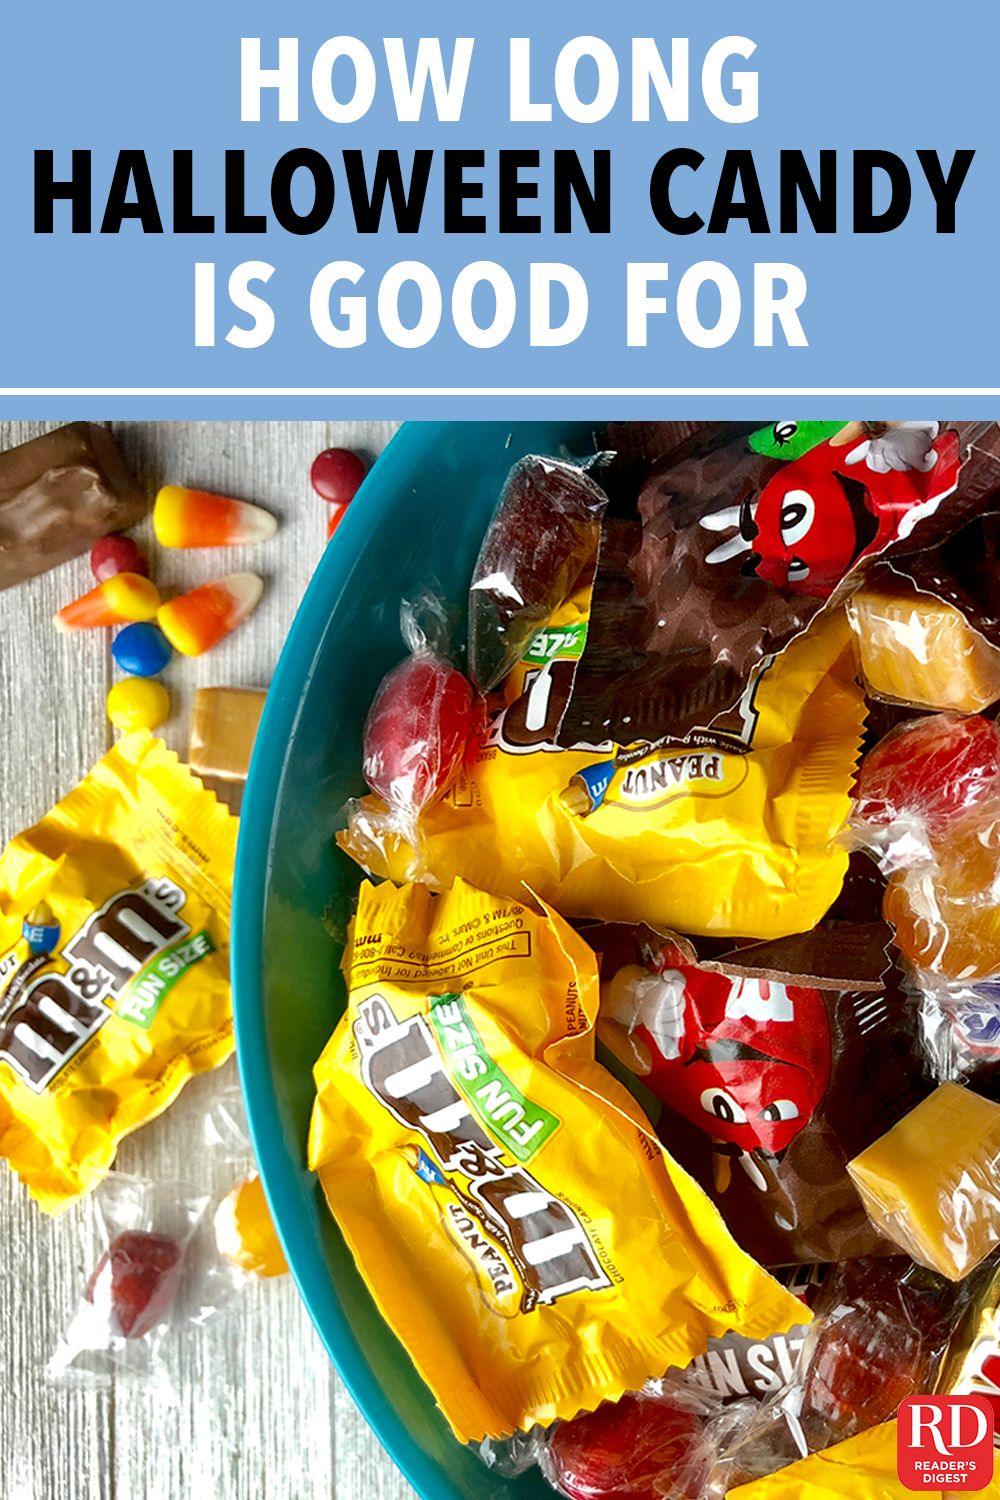 Here's When You Should Toss Your Extra Halloween Candy